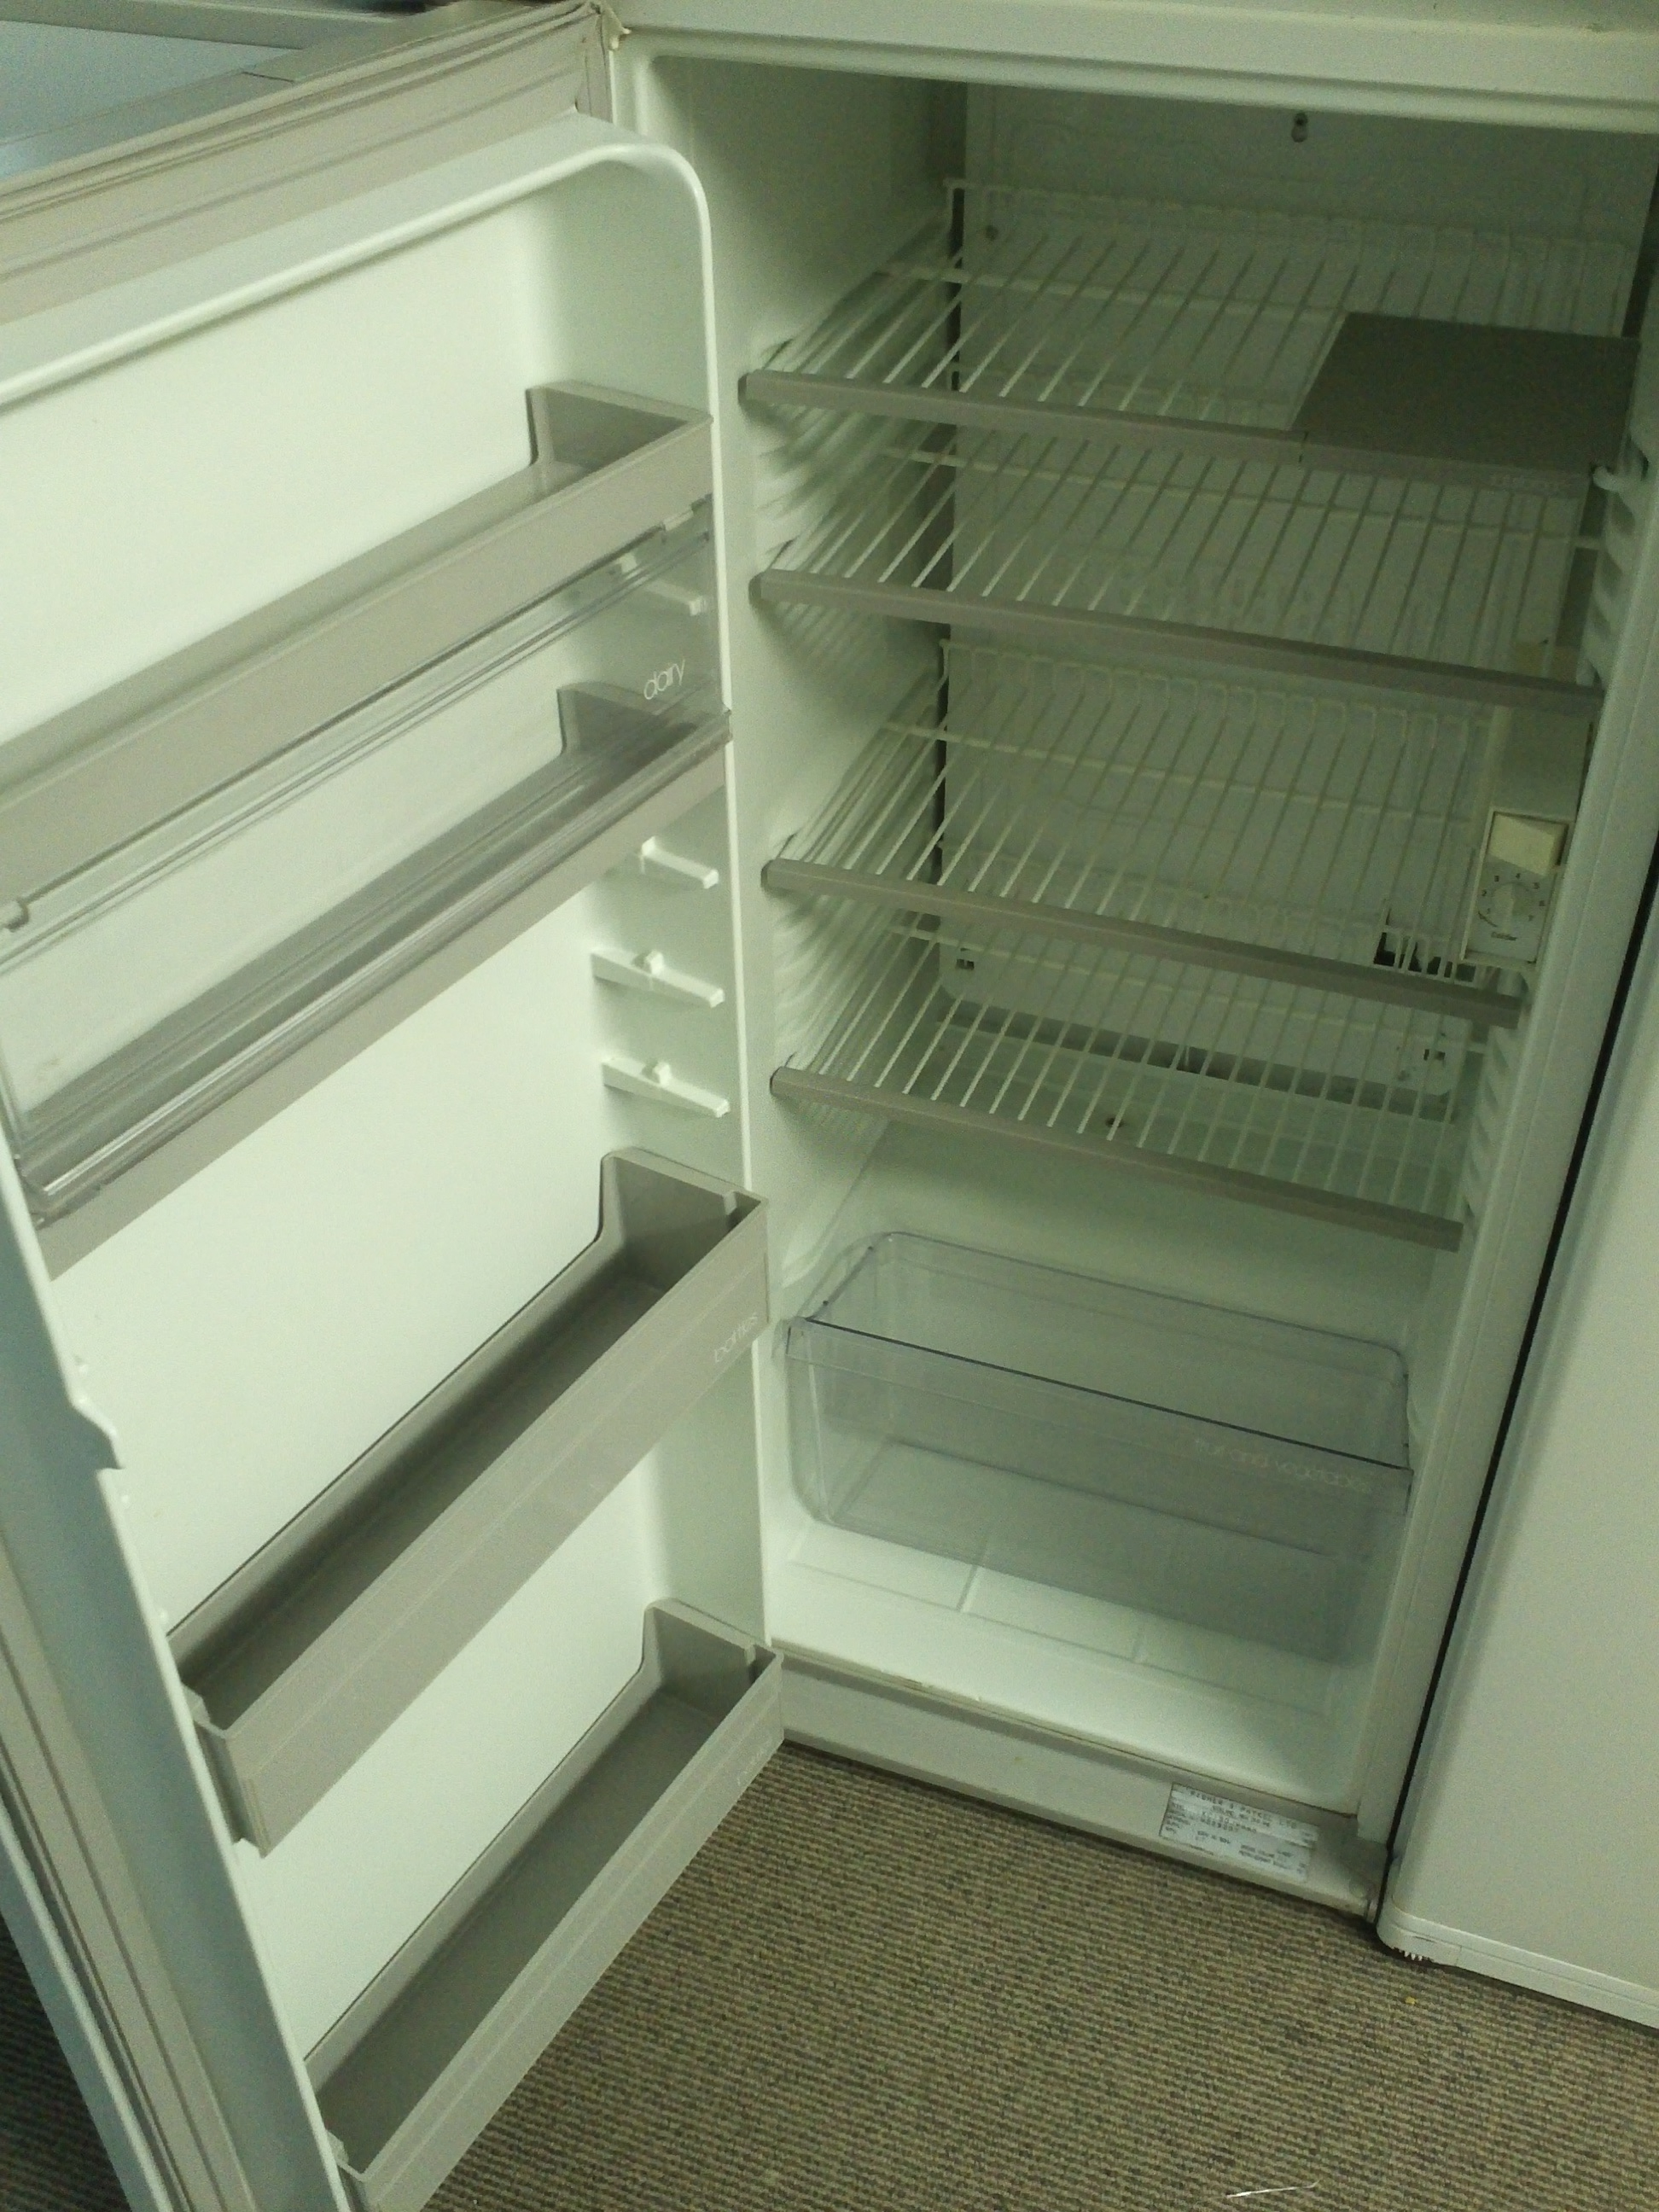 Party Fridge 190 litre